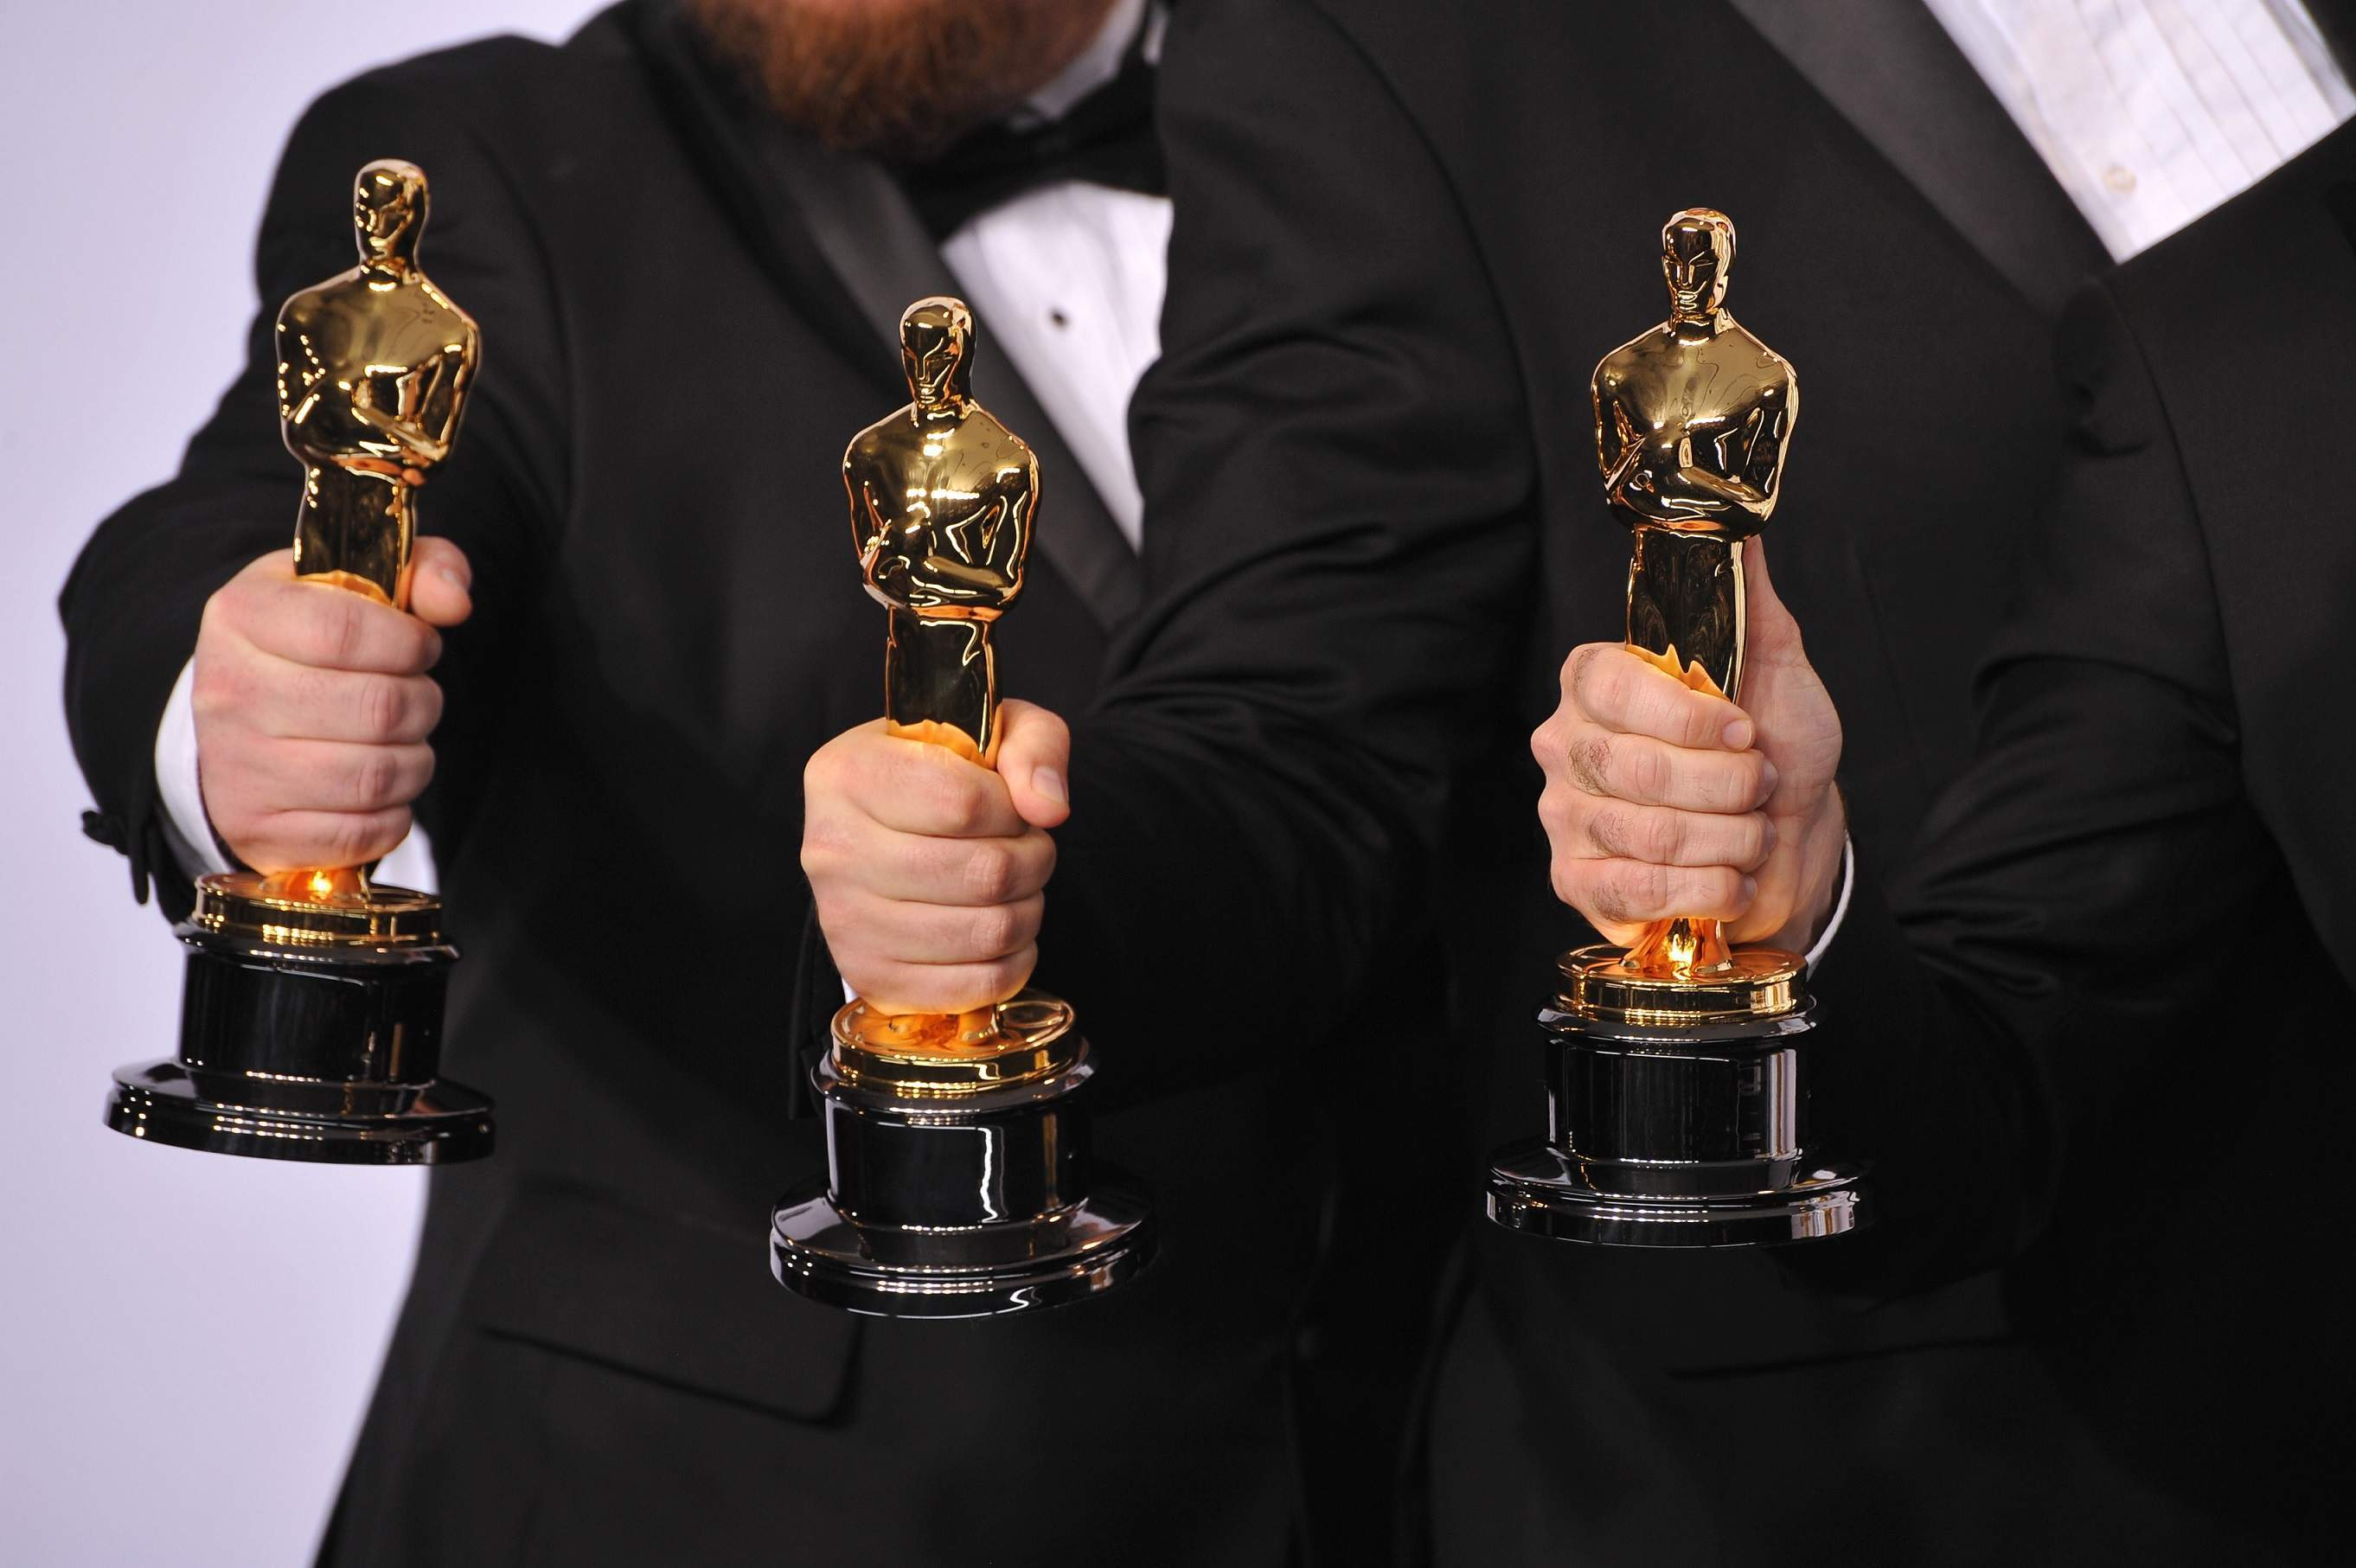 The Academy appoints 928 new members to address diversity